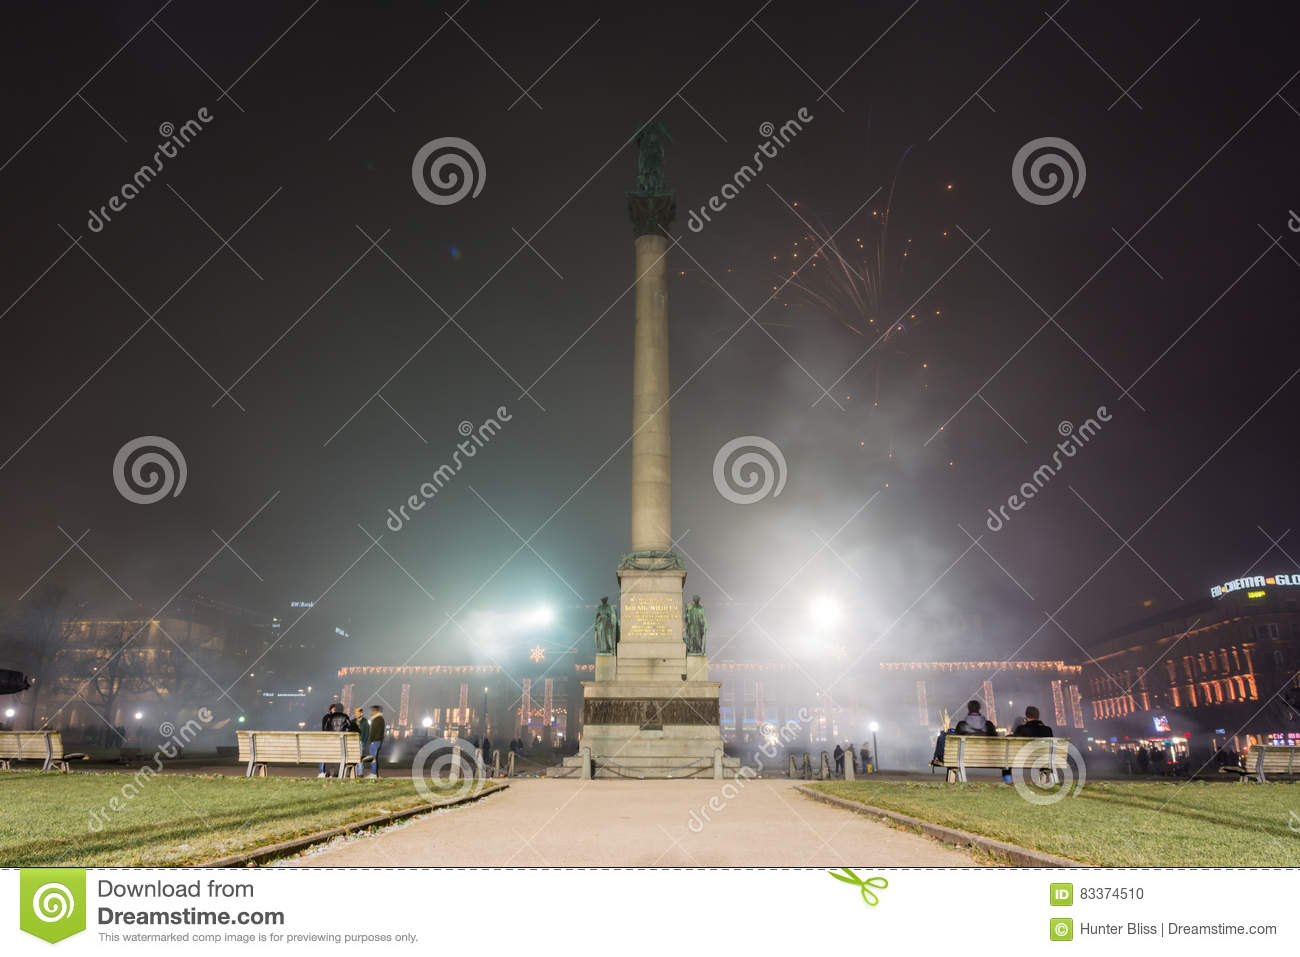 Stuttgart Fireworks Schlossplatz Smoke New Year Celebration Ominous Fog Night Spotlights Explosions Fire 2016 2017